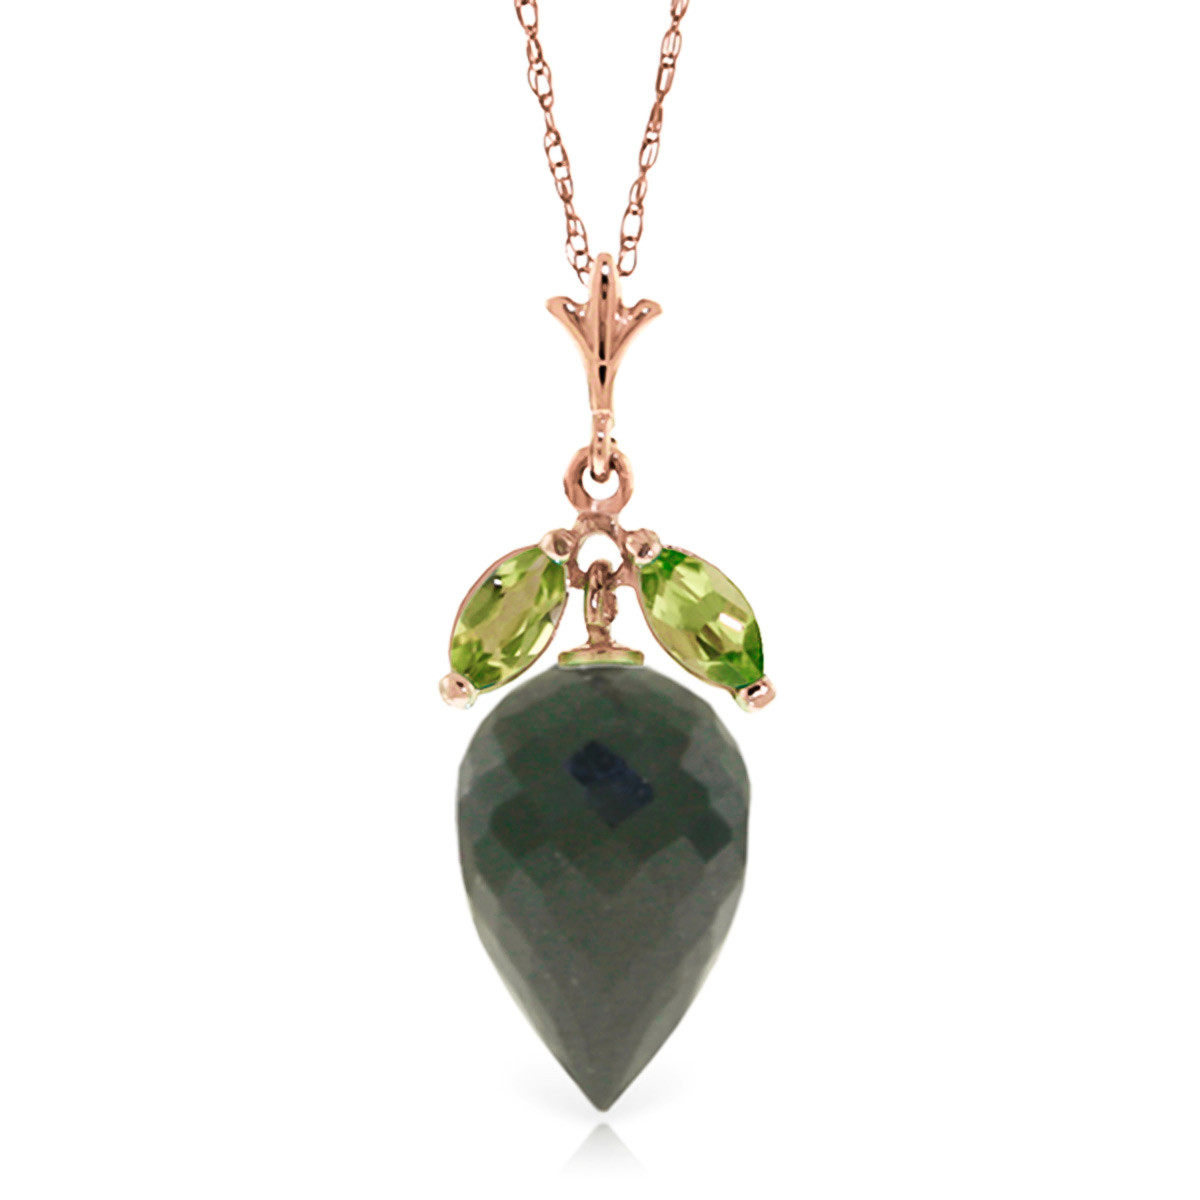 Black Spinel & Peridot Drop Pendant Necklace in 9ct Rose Gold